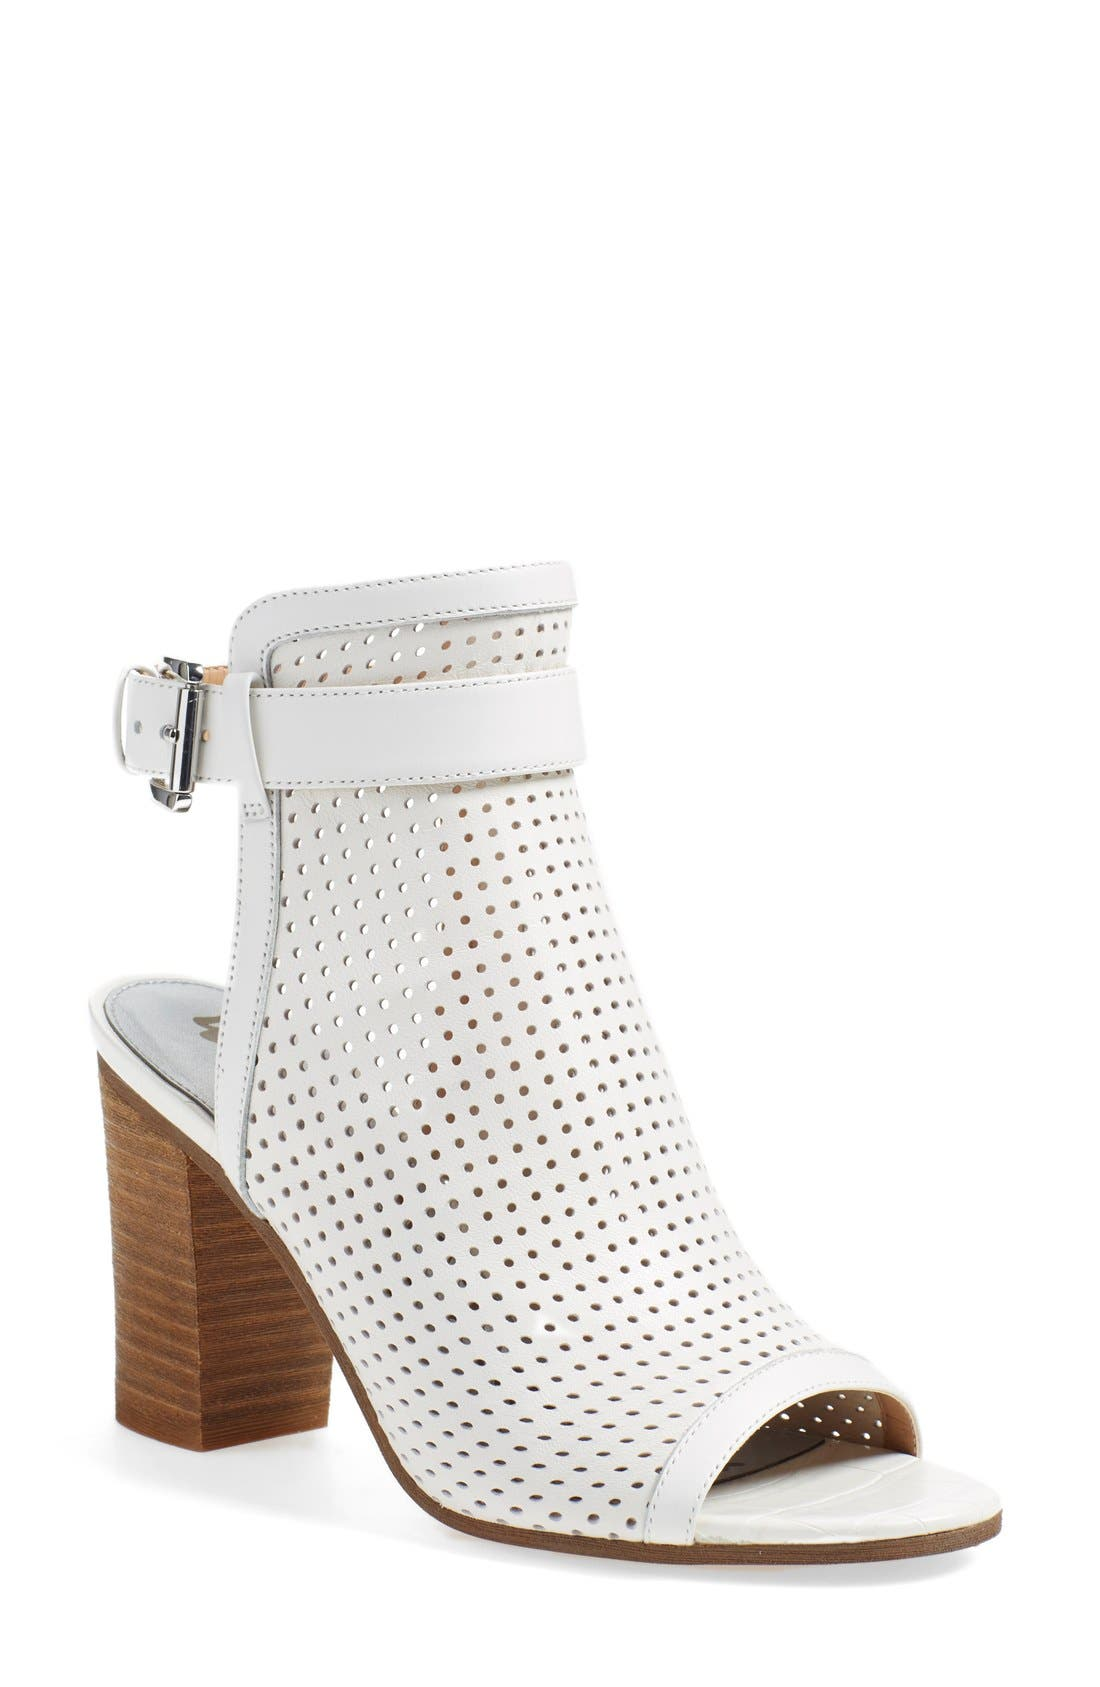 Alternate Image 1 Selected - Sam Edelman 'Emmie' Open Toe Boot (Women)